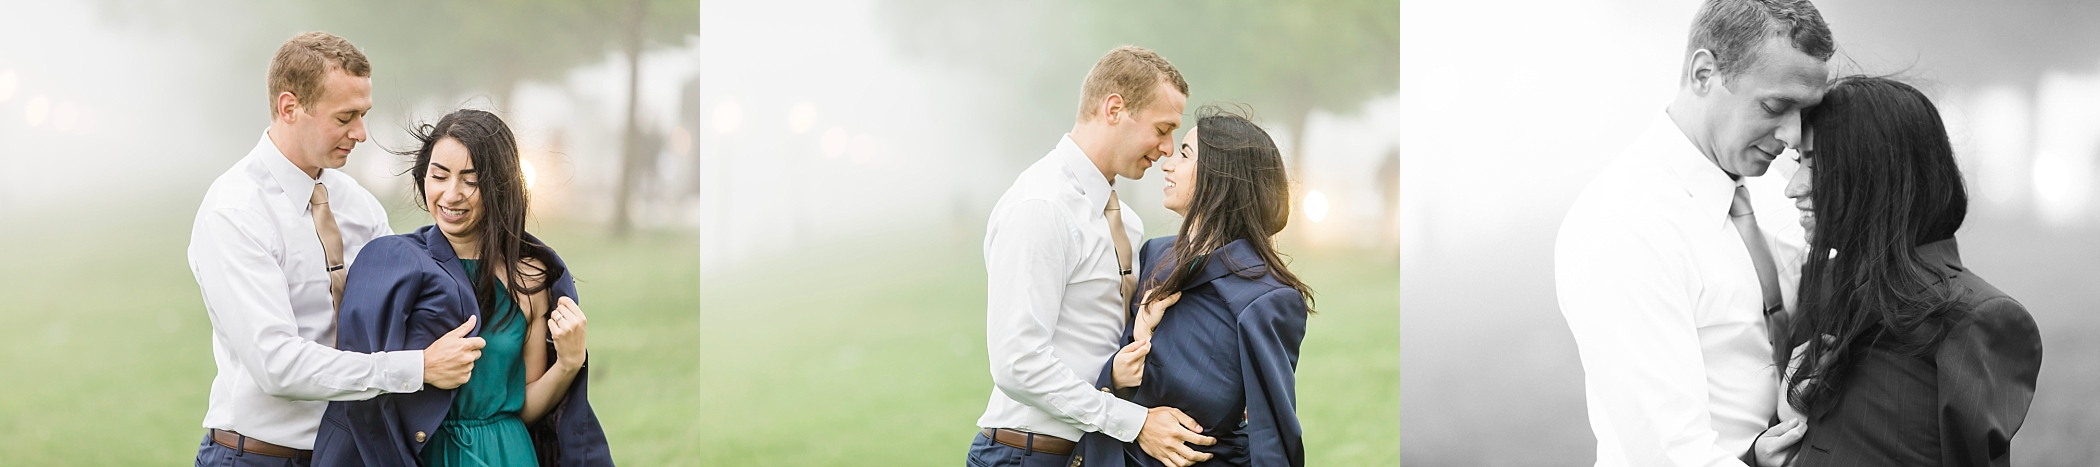 chicago engagement photography love in the windy and foggy city_0293.jpg